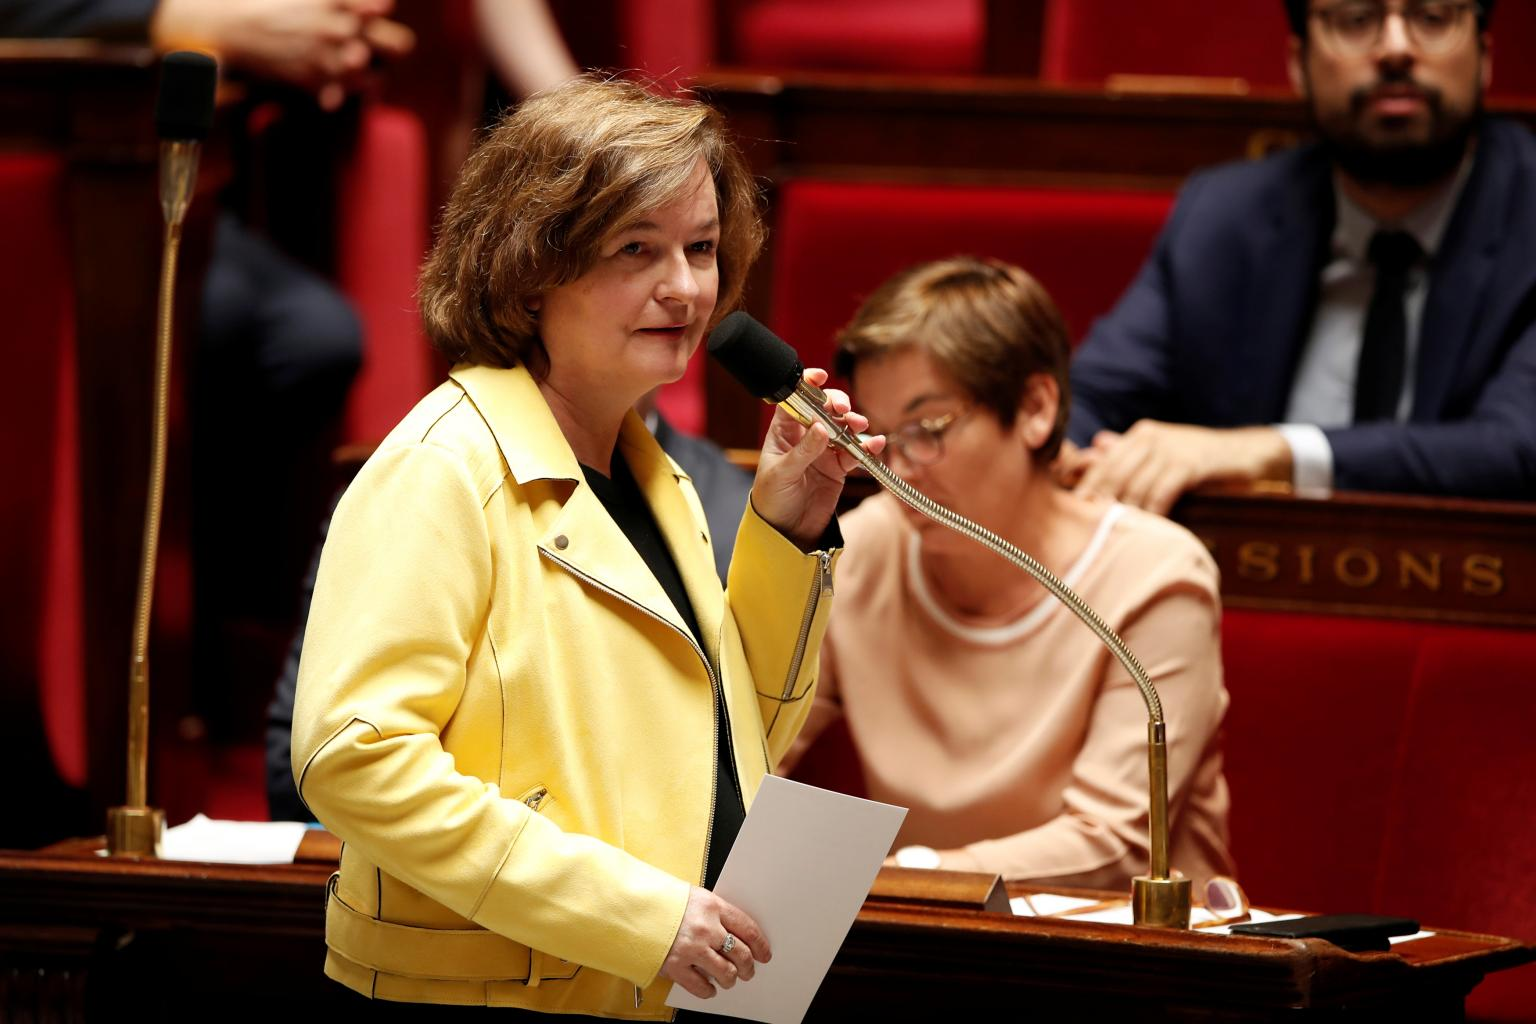 France won't take any lessons from Rome on immigration, says minister